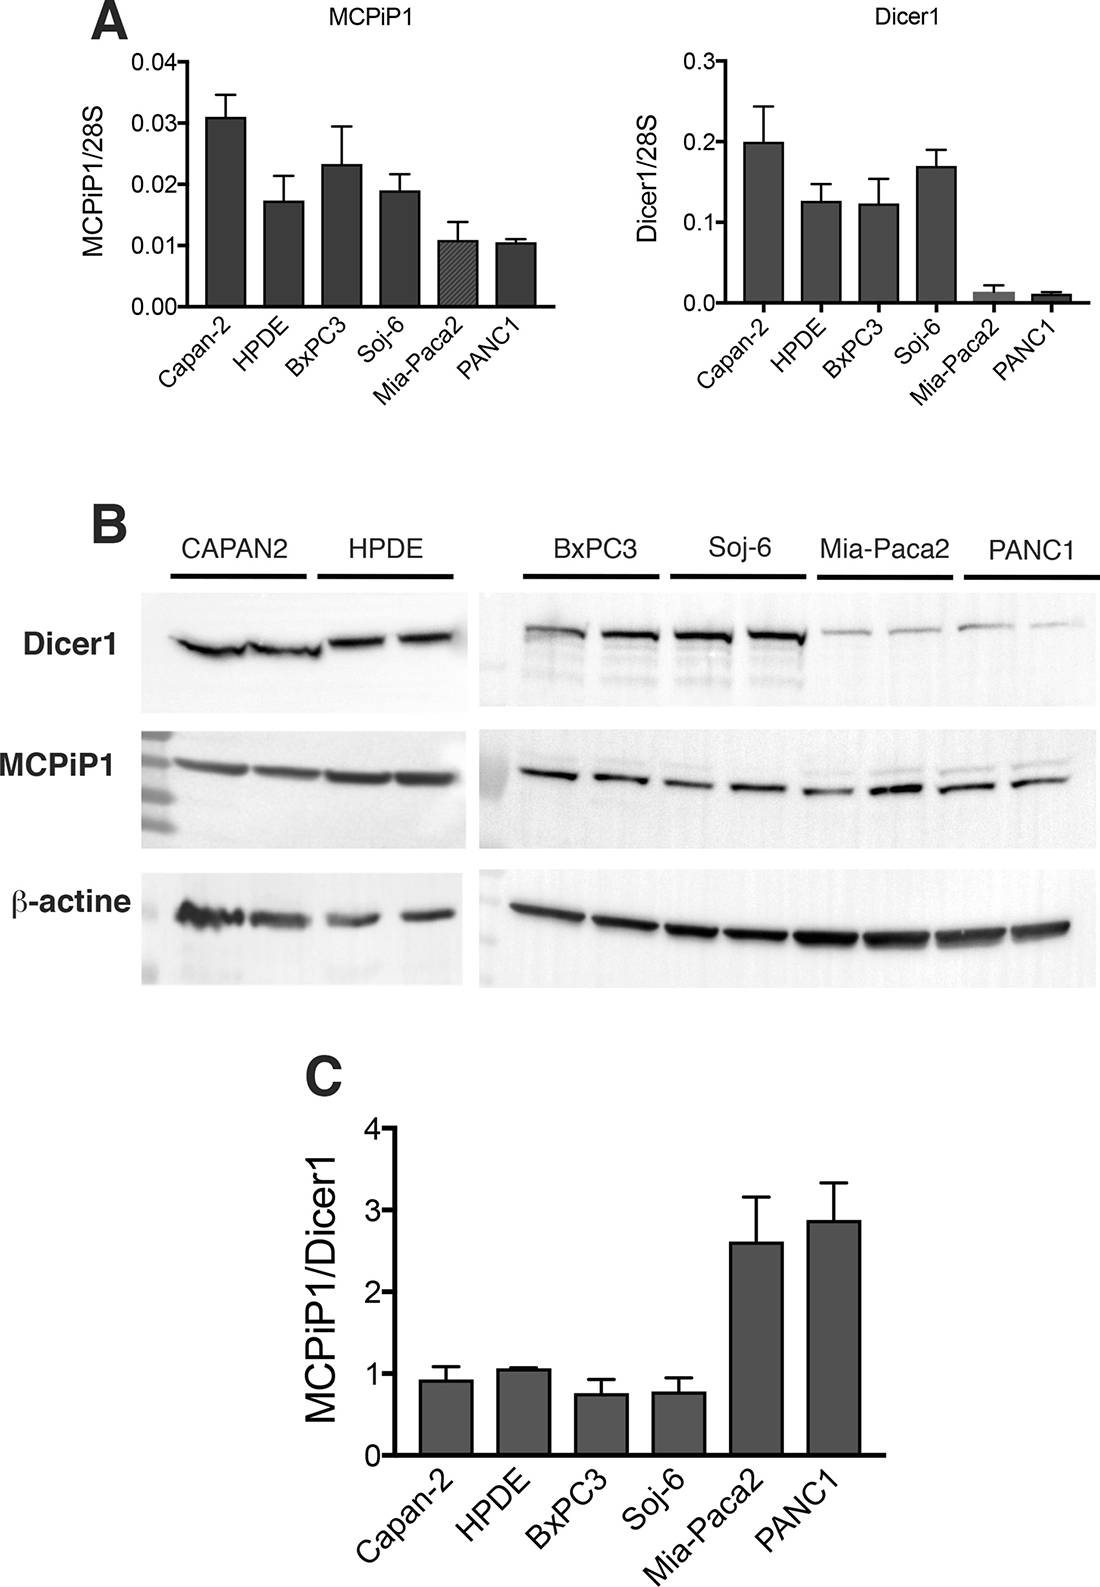 Expression of Dicer1 and MCPiP1 in tumoral pancreatic cell lines.